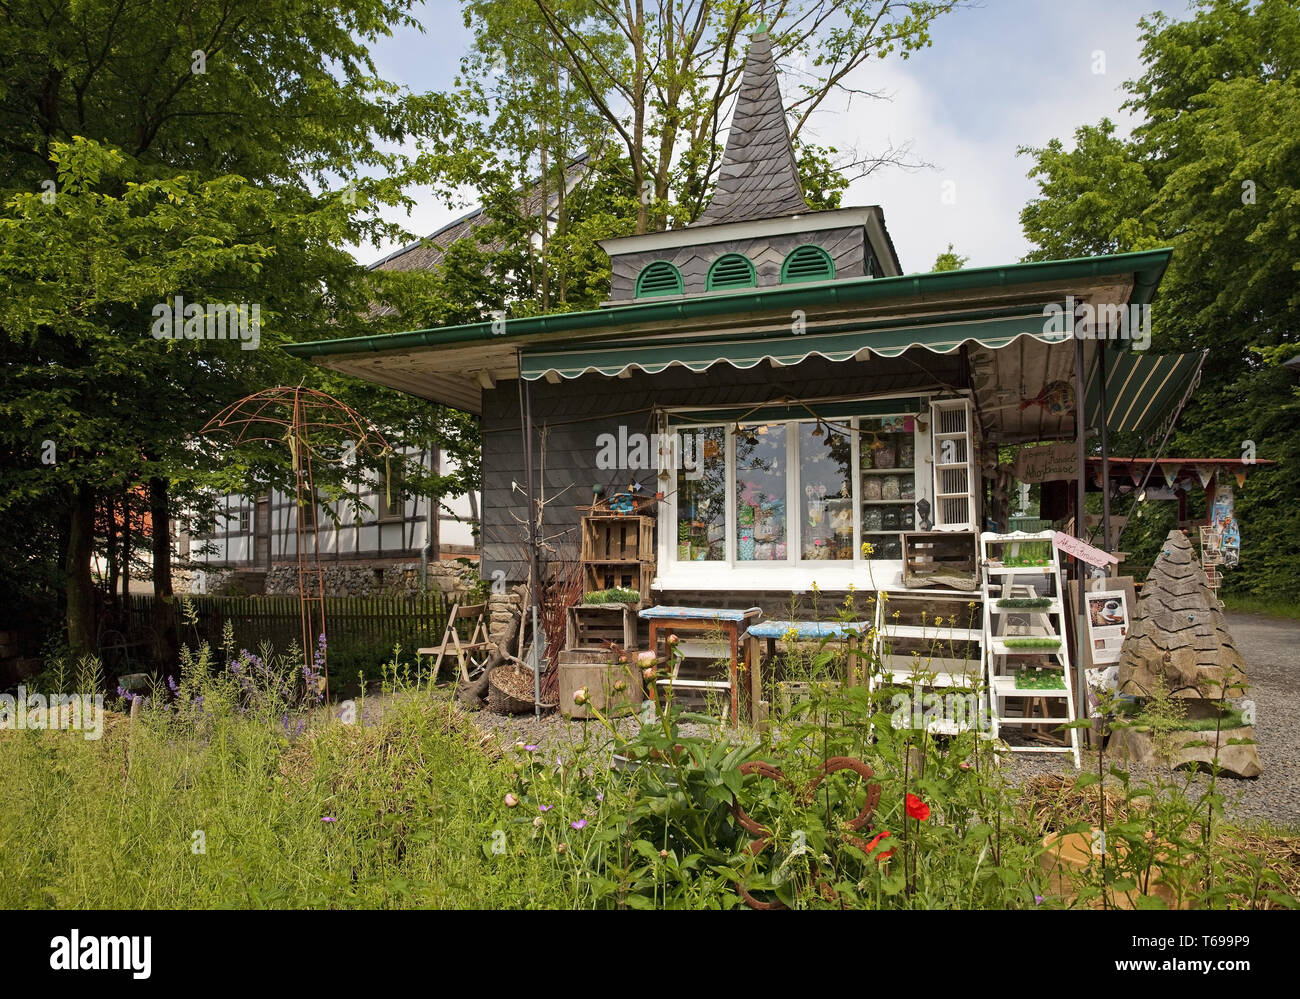 historical kiosk in the open-air museum, Lindlar, Bergisches Land, North Rhine-Westphalia, Germany - Stock Image